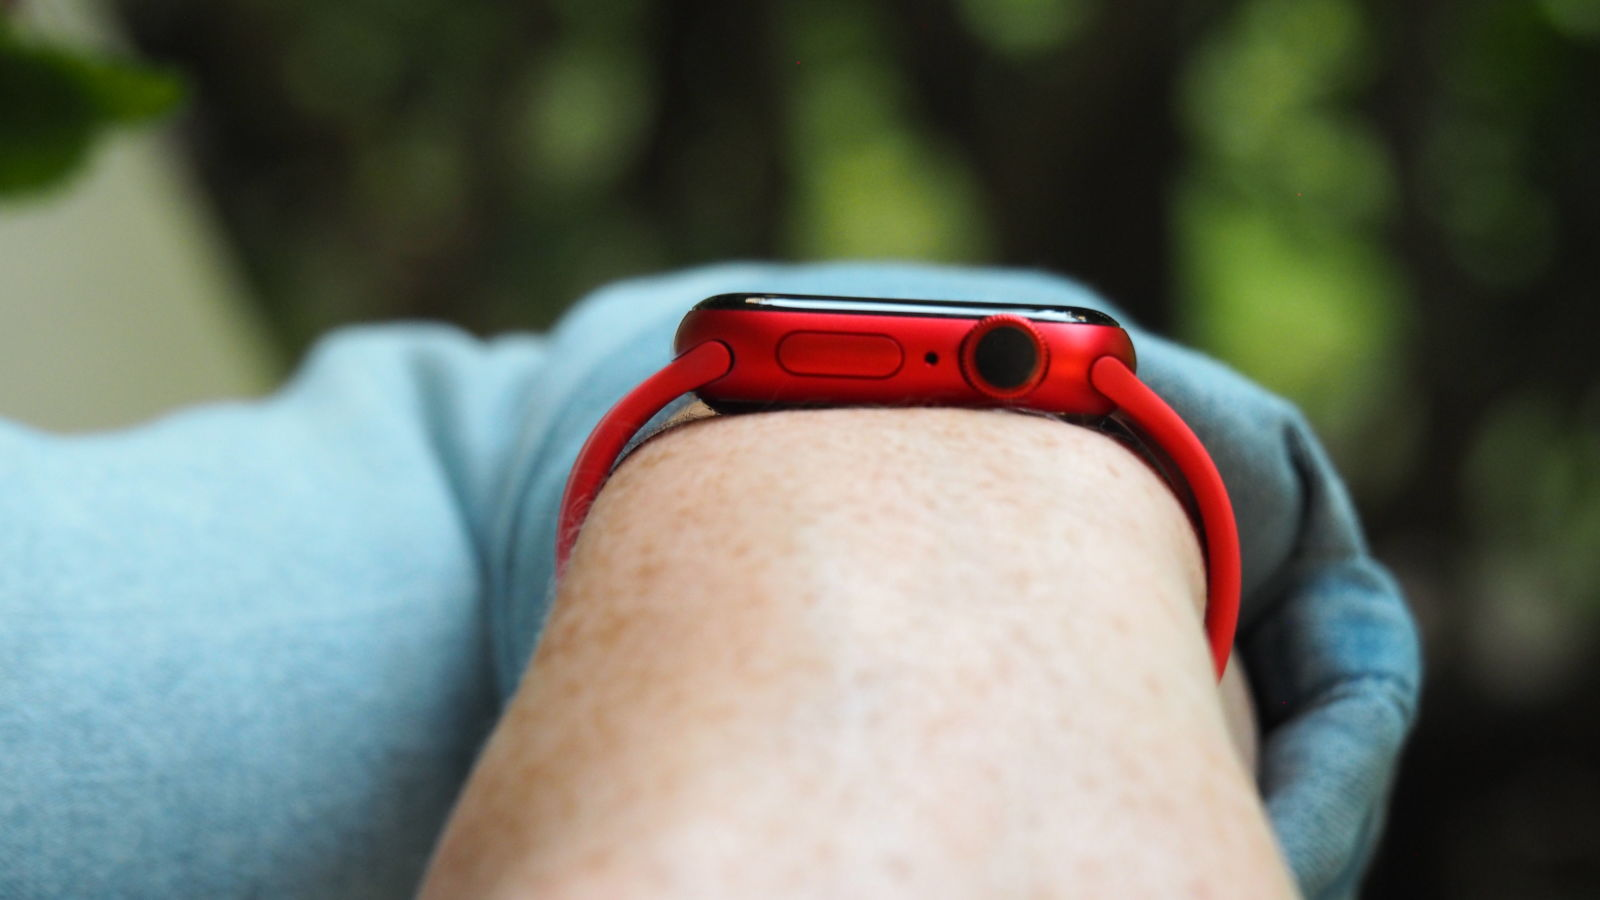 Apple Watch series 6 hands-on. Crédito: Caitlin McGarry/Gizmodo